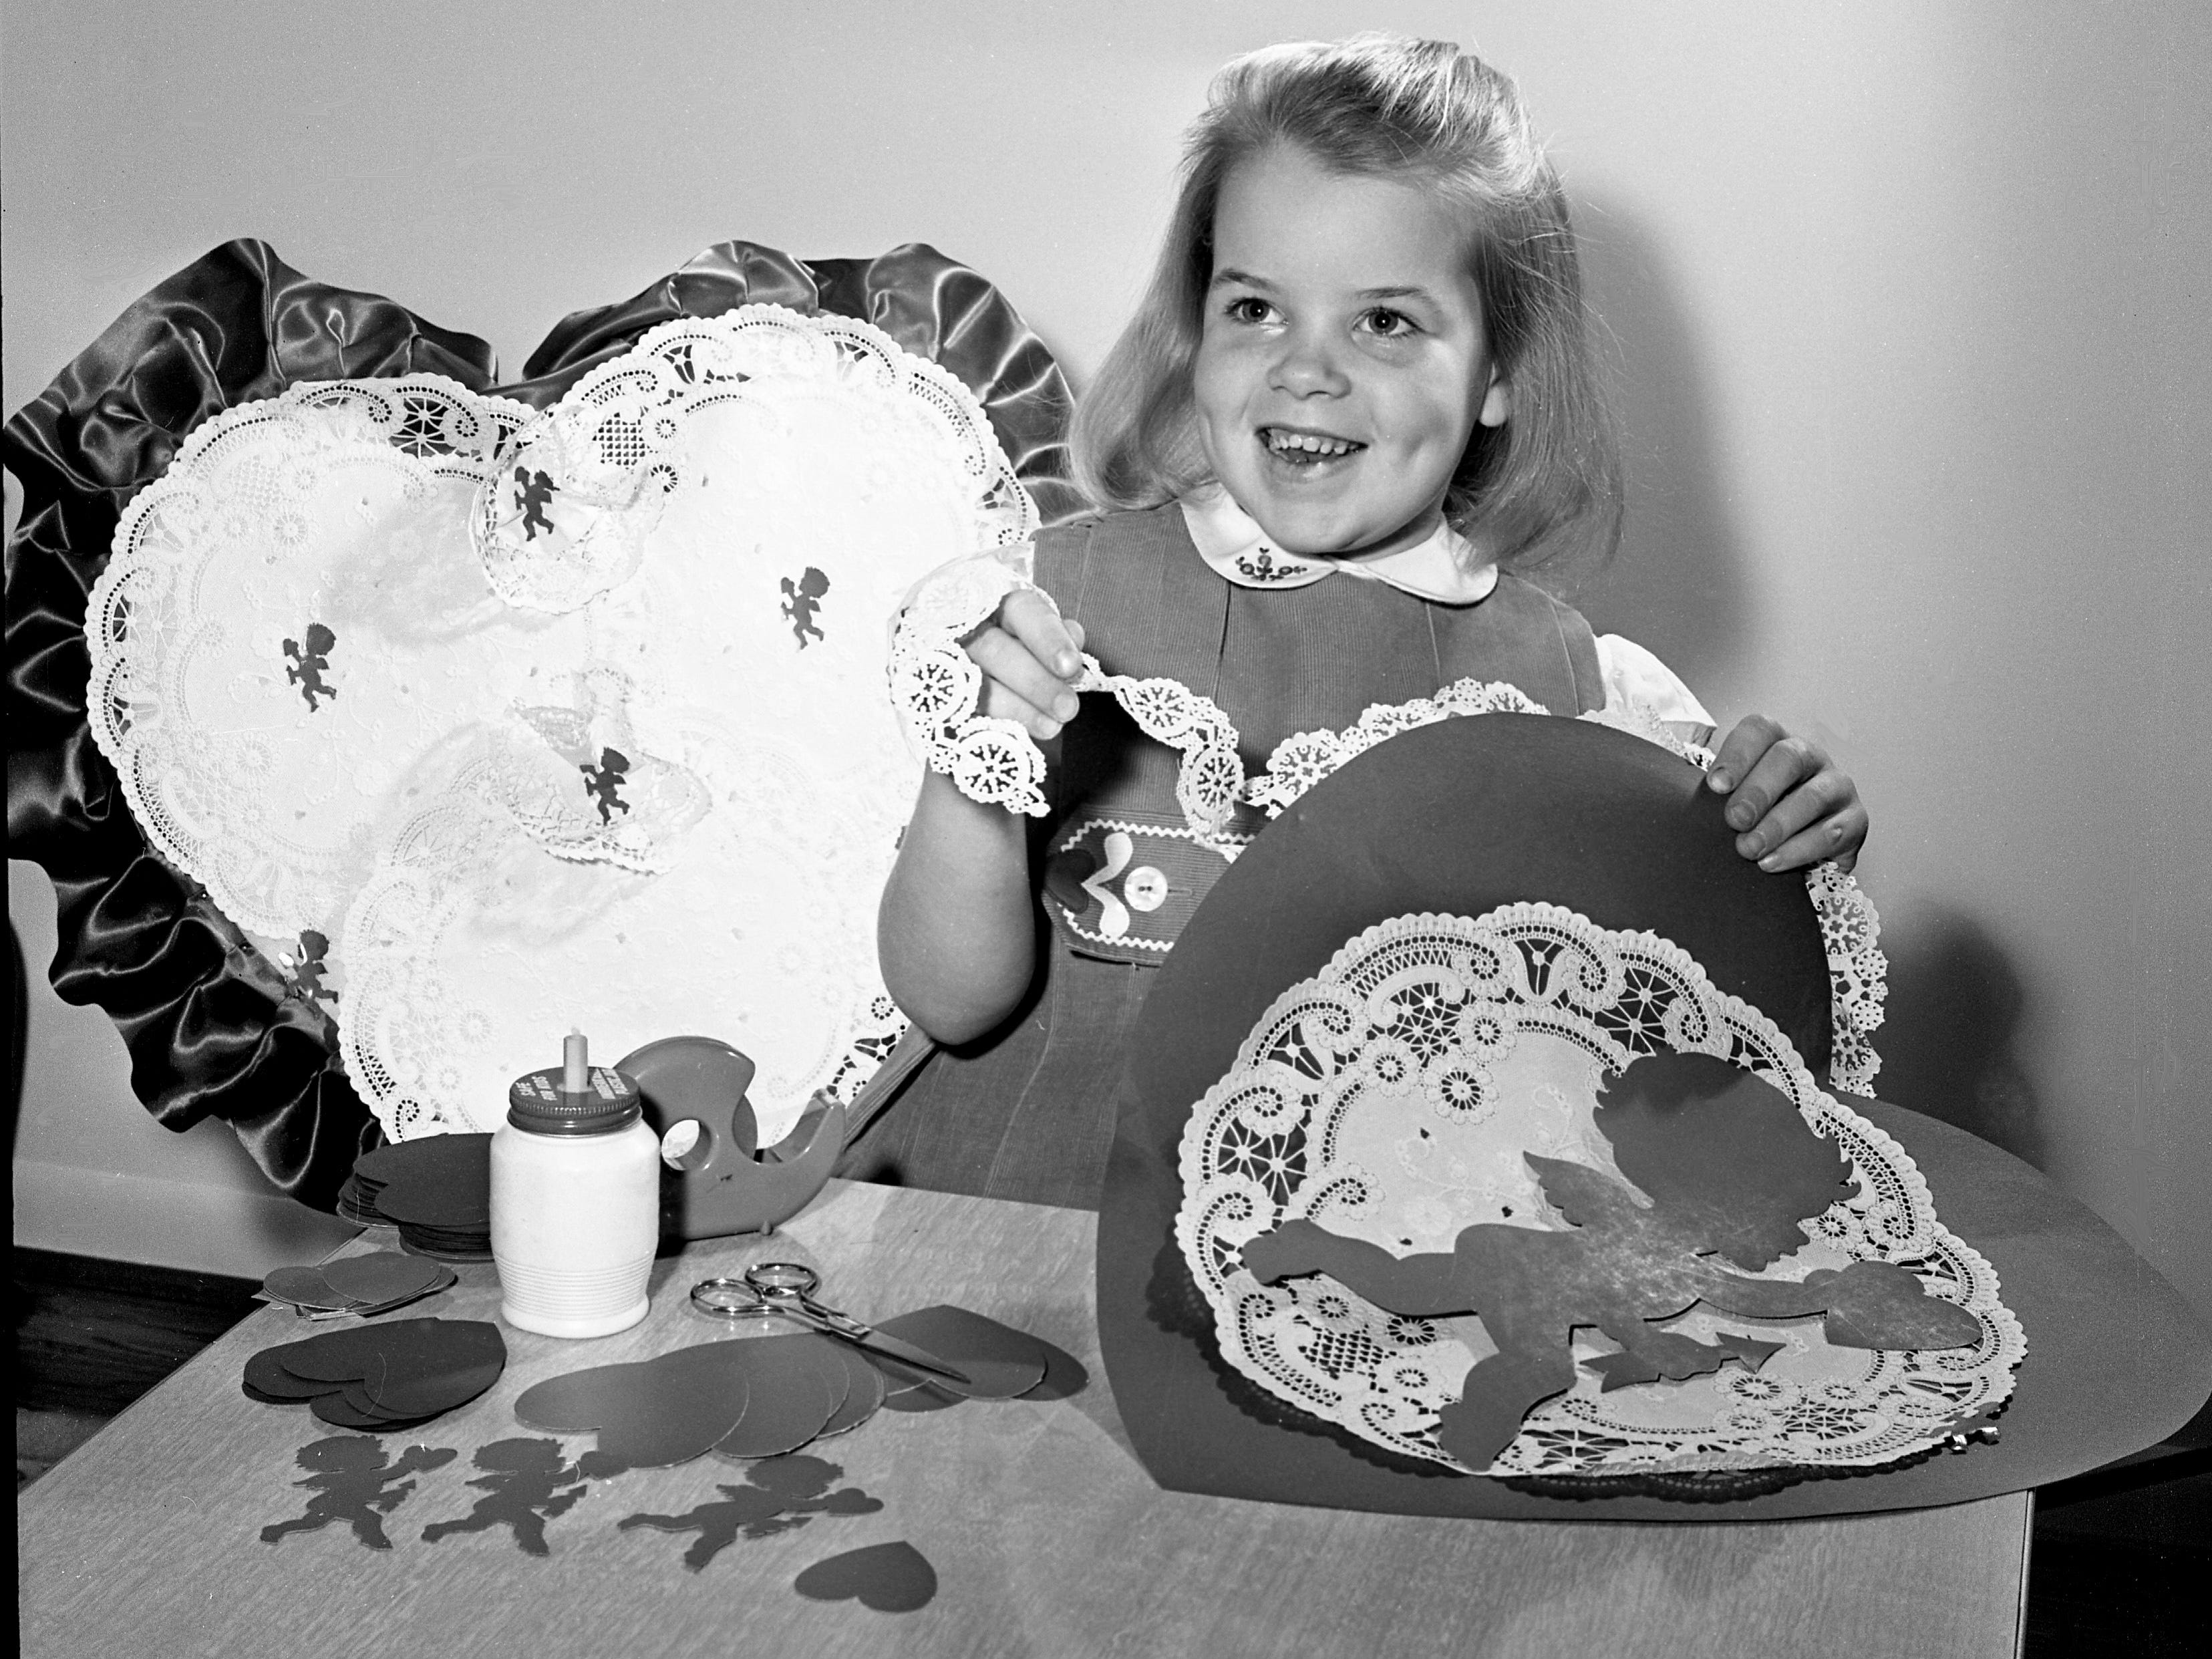 Lacey frills are used to trim the valentine Linda Evers is making Feb. 6, 1964. But Linda wouldn't tell for whom she intended the pretty heart-shaped card.